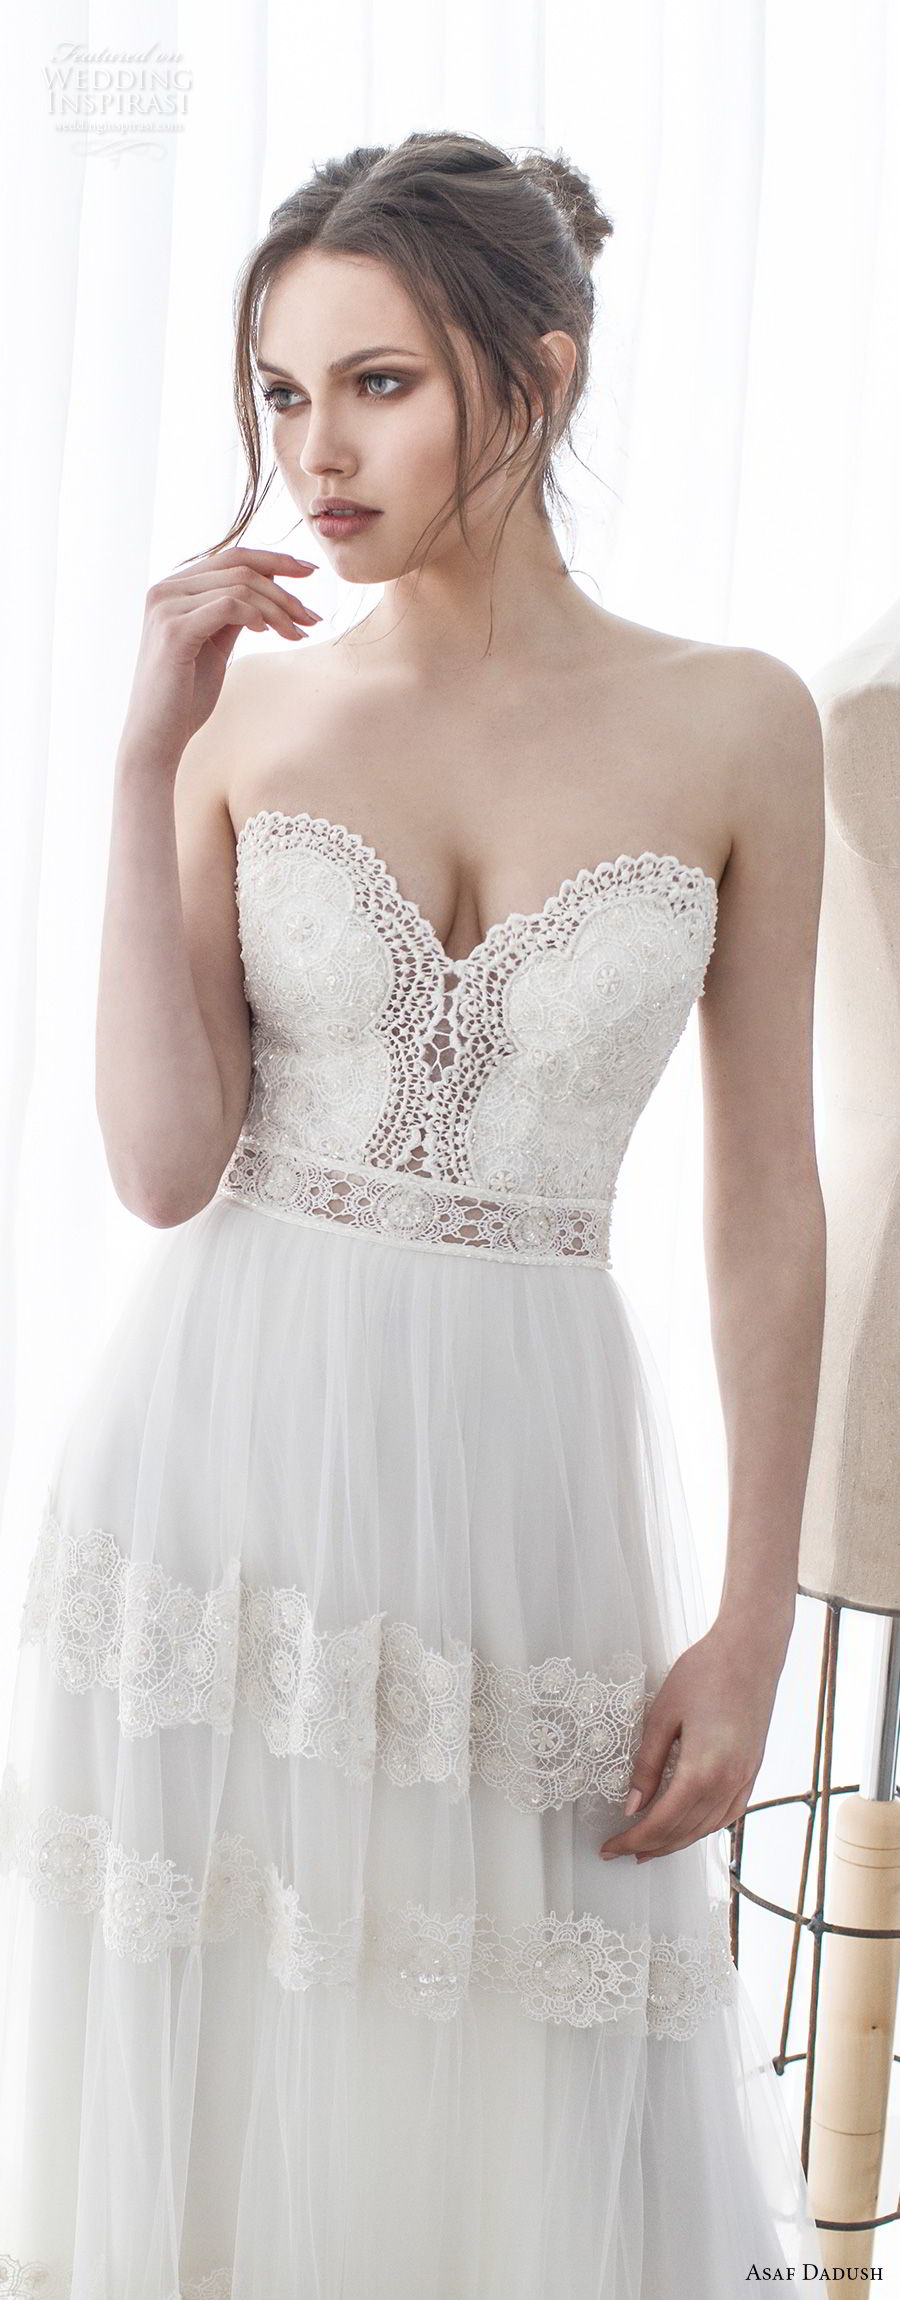 asaf dadush 2017 bridal strapless sweetheart neckline heavily embellished bodice romantic soft a line wedding dress sweep train (10) zv